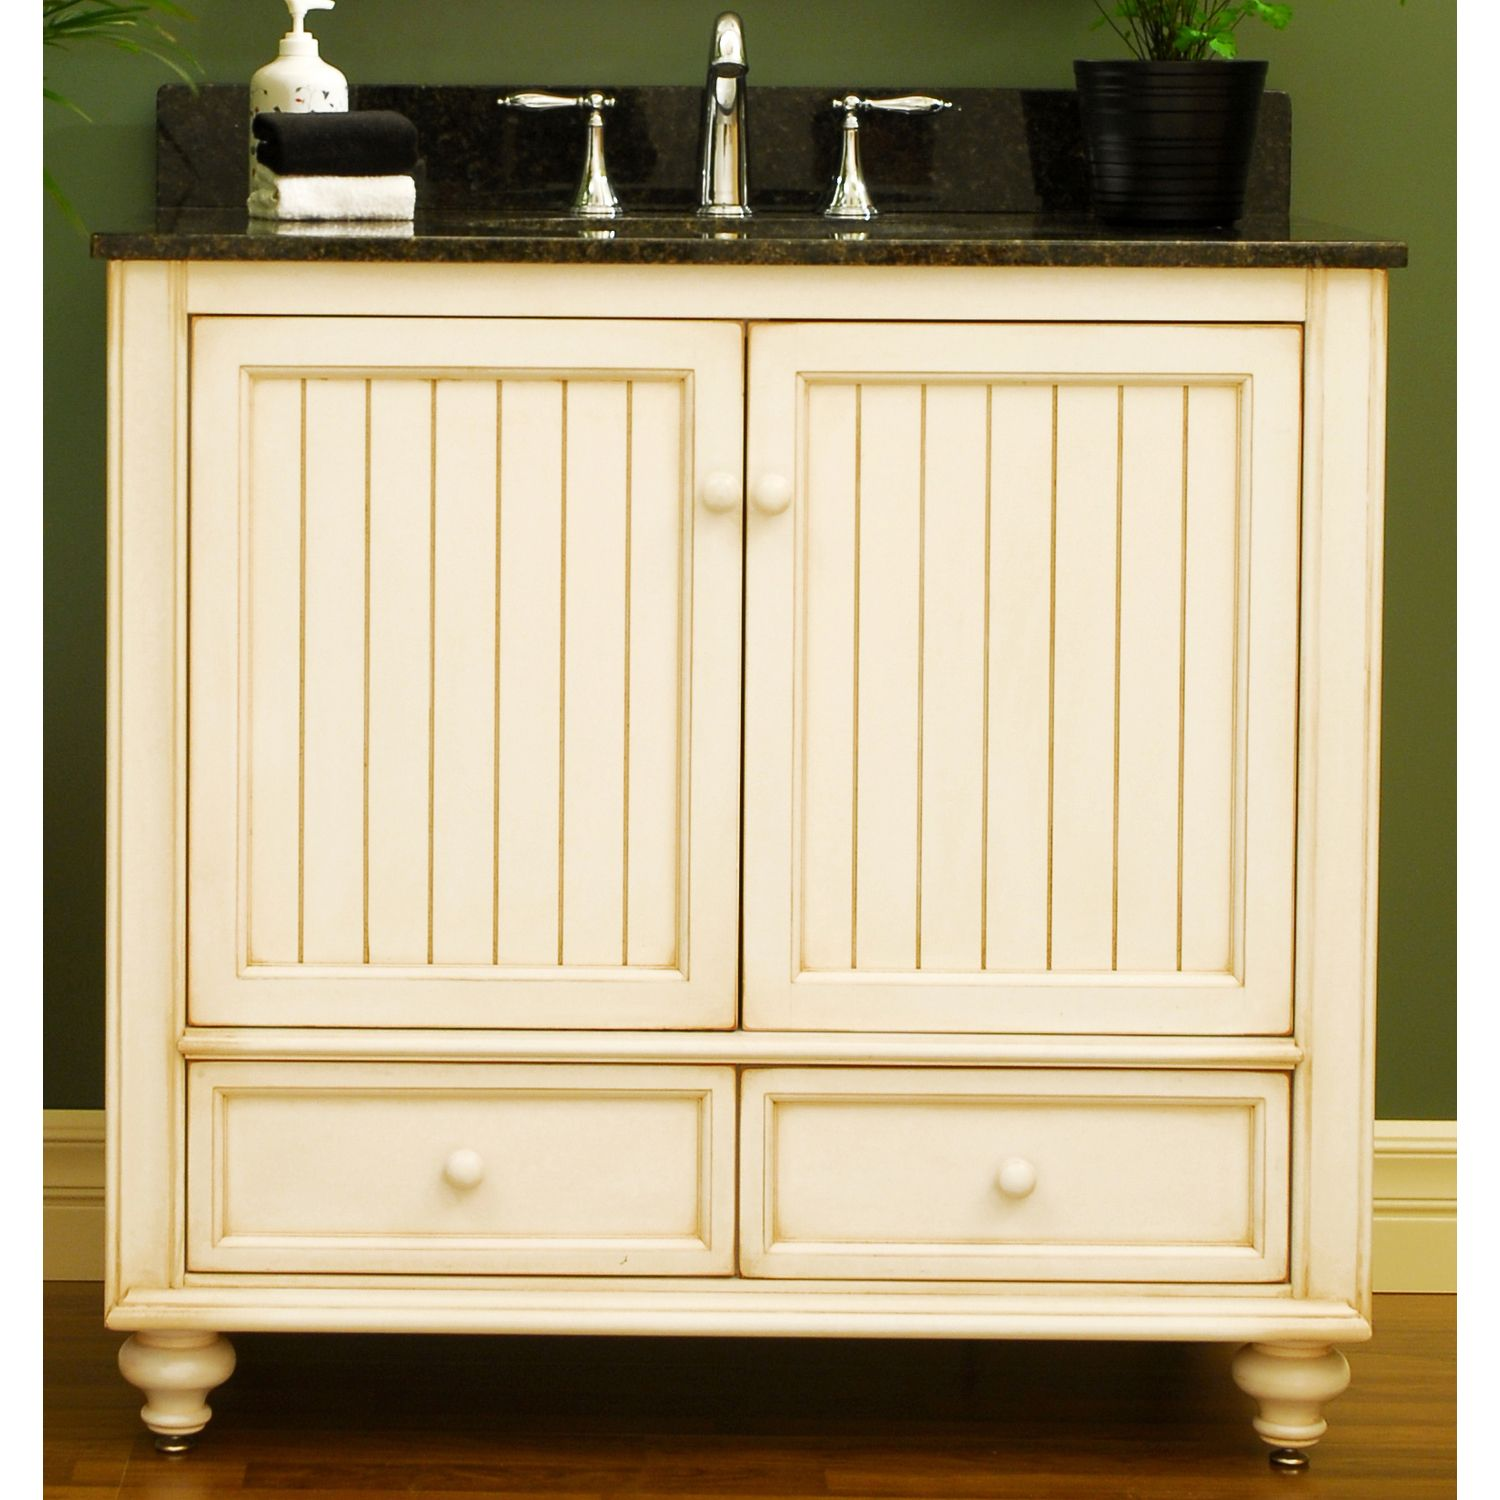 Gallery One Cottage Style Wood Bathroom Vanity Cabinet From